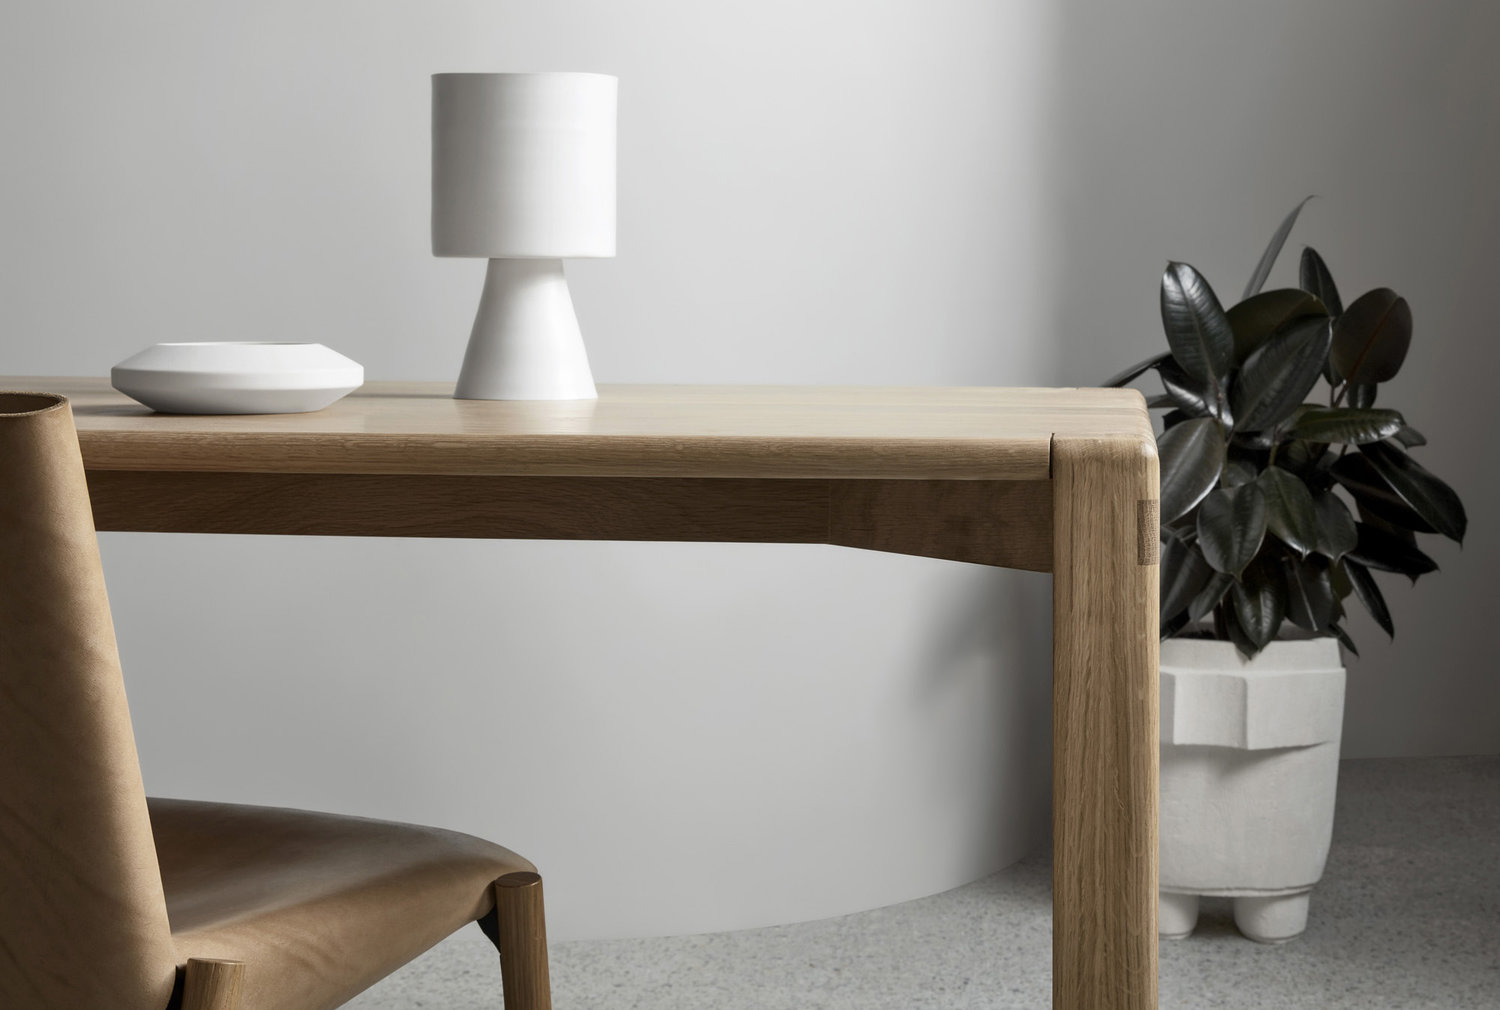 The AOD - T is manufactured and handcrafted by Made By Morgen in Brunswick, Melbourne, Australia